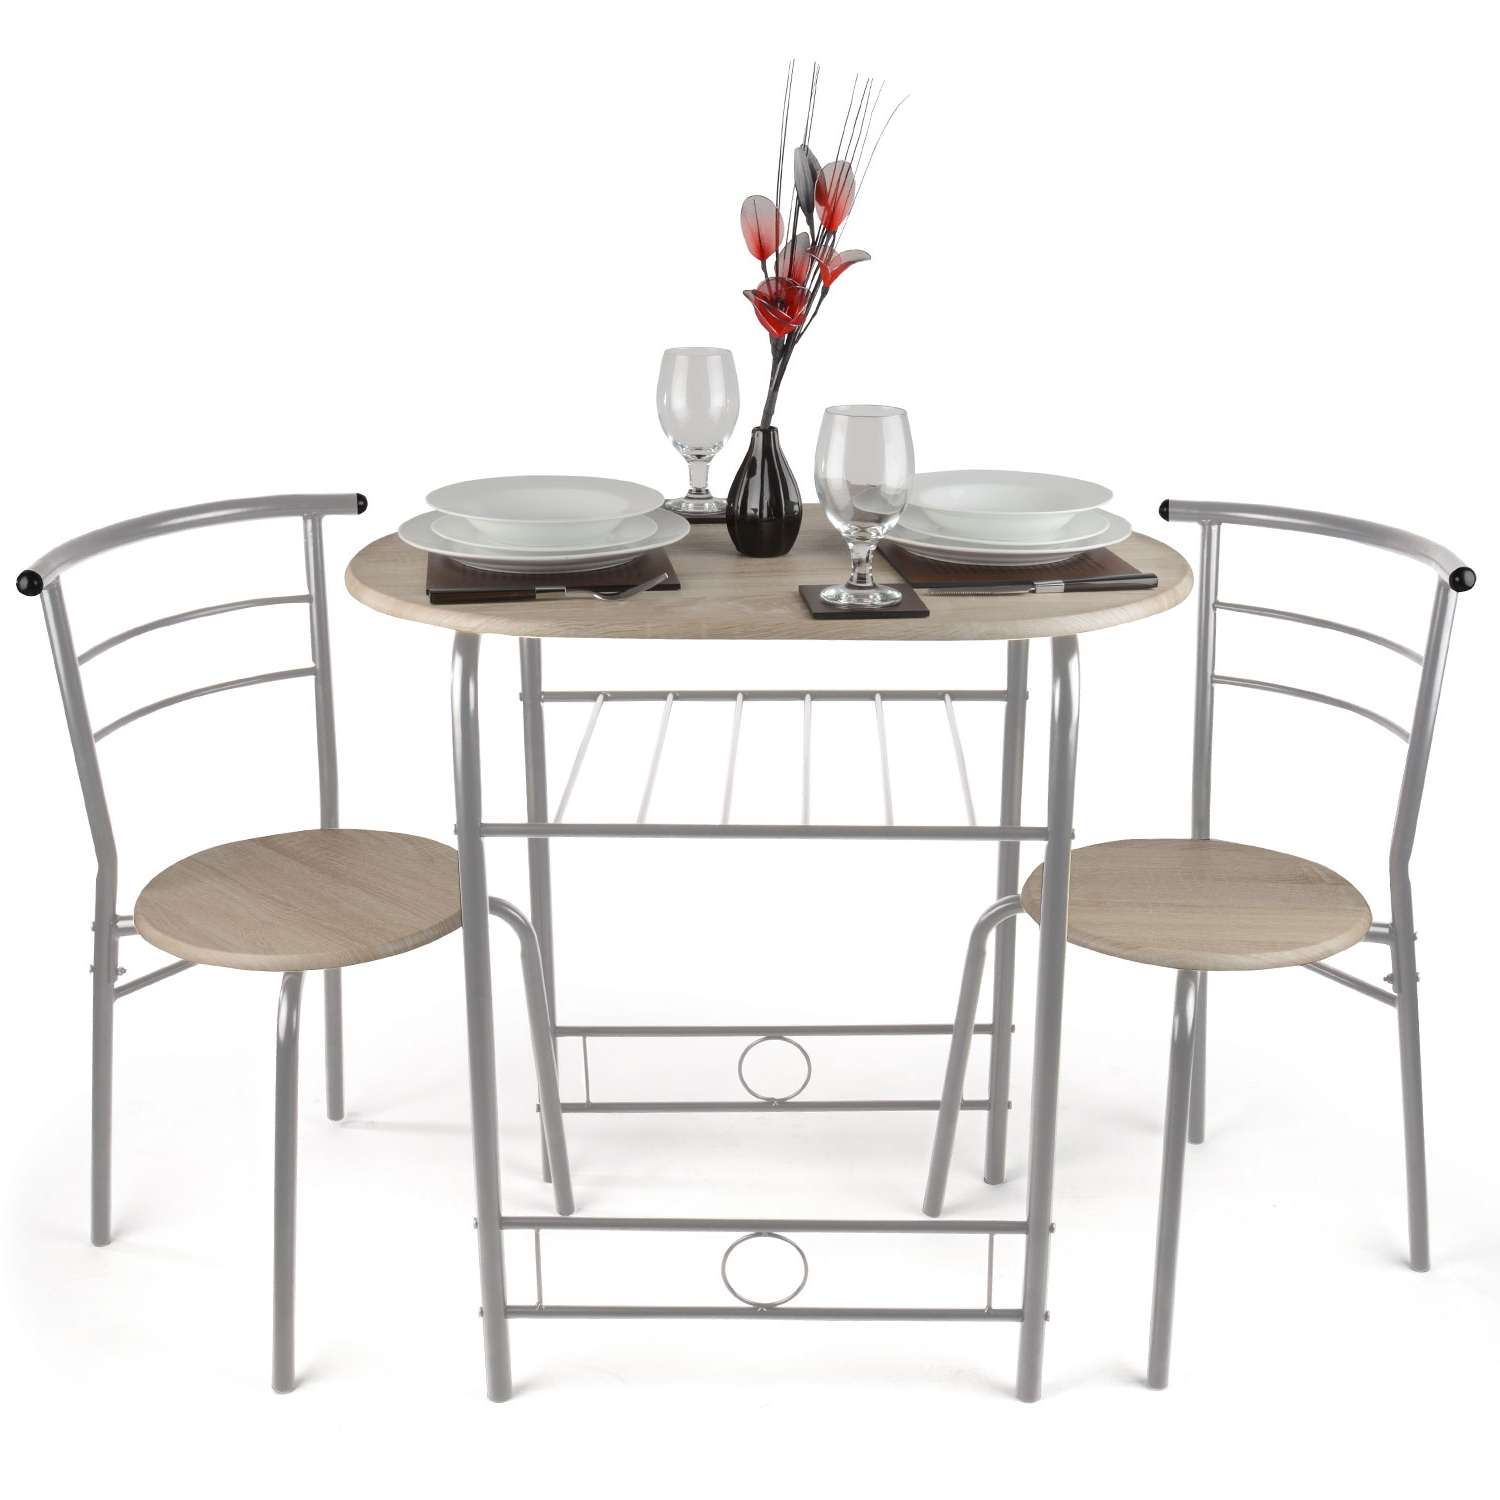 2019 3 Piece Breakfast Dining Sets For 3 Piece Dining Set Breakfast Bar Kitchen Table Chairs Two Person (View 6 of 25)